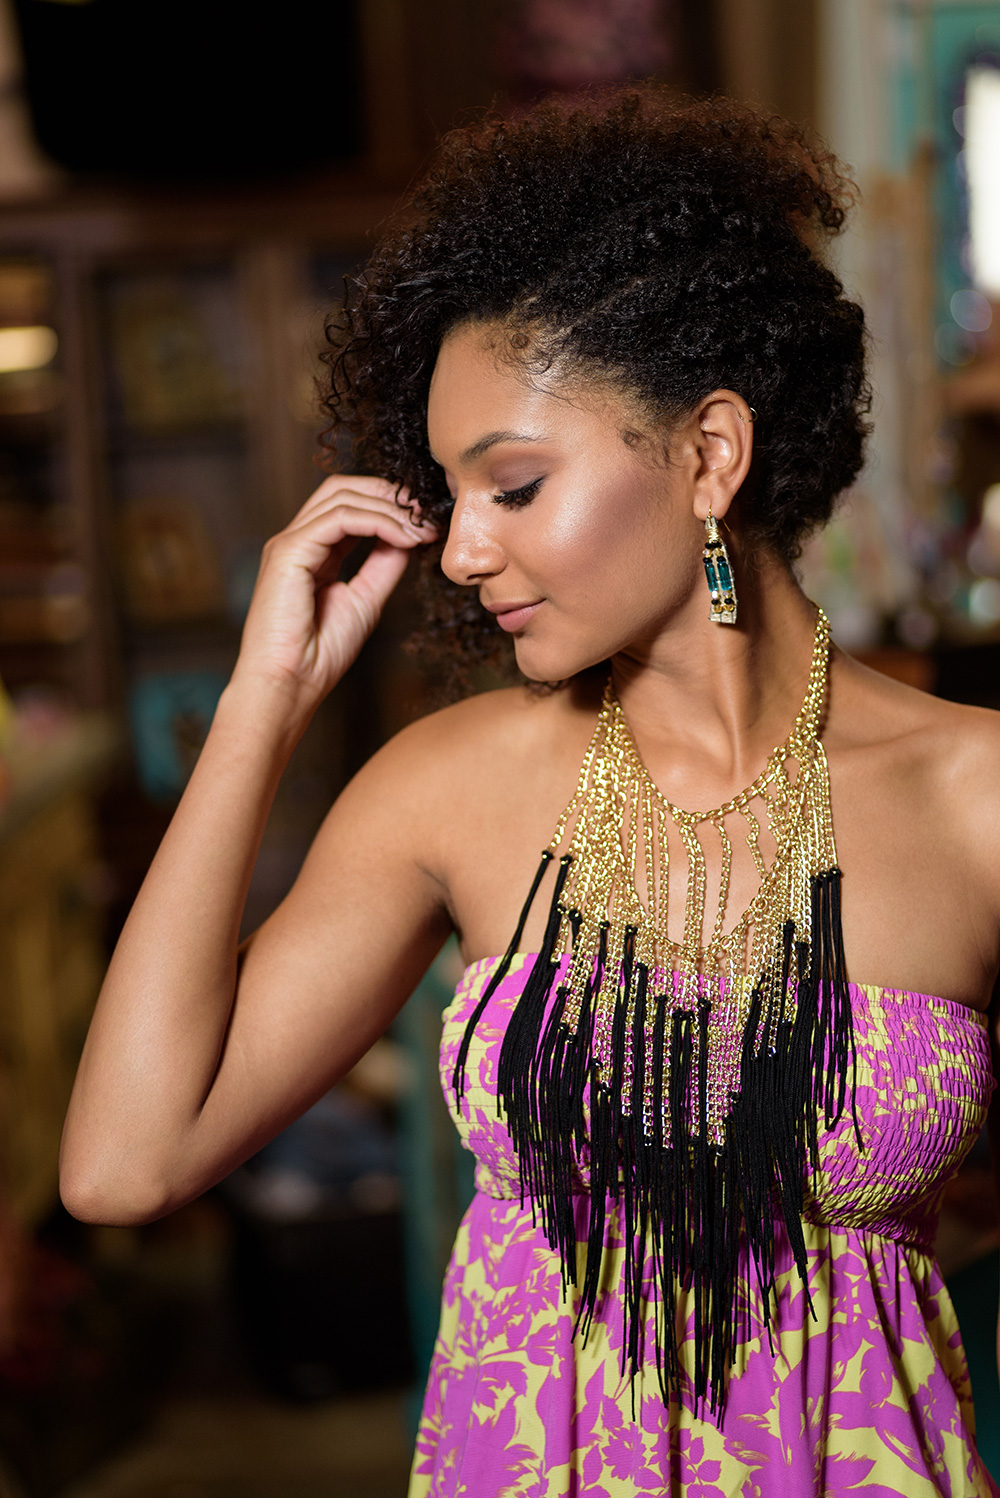 woman wearing strapless dress with dramatic necklace